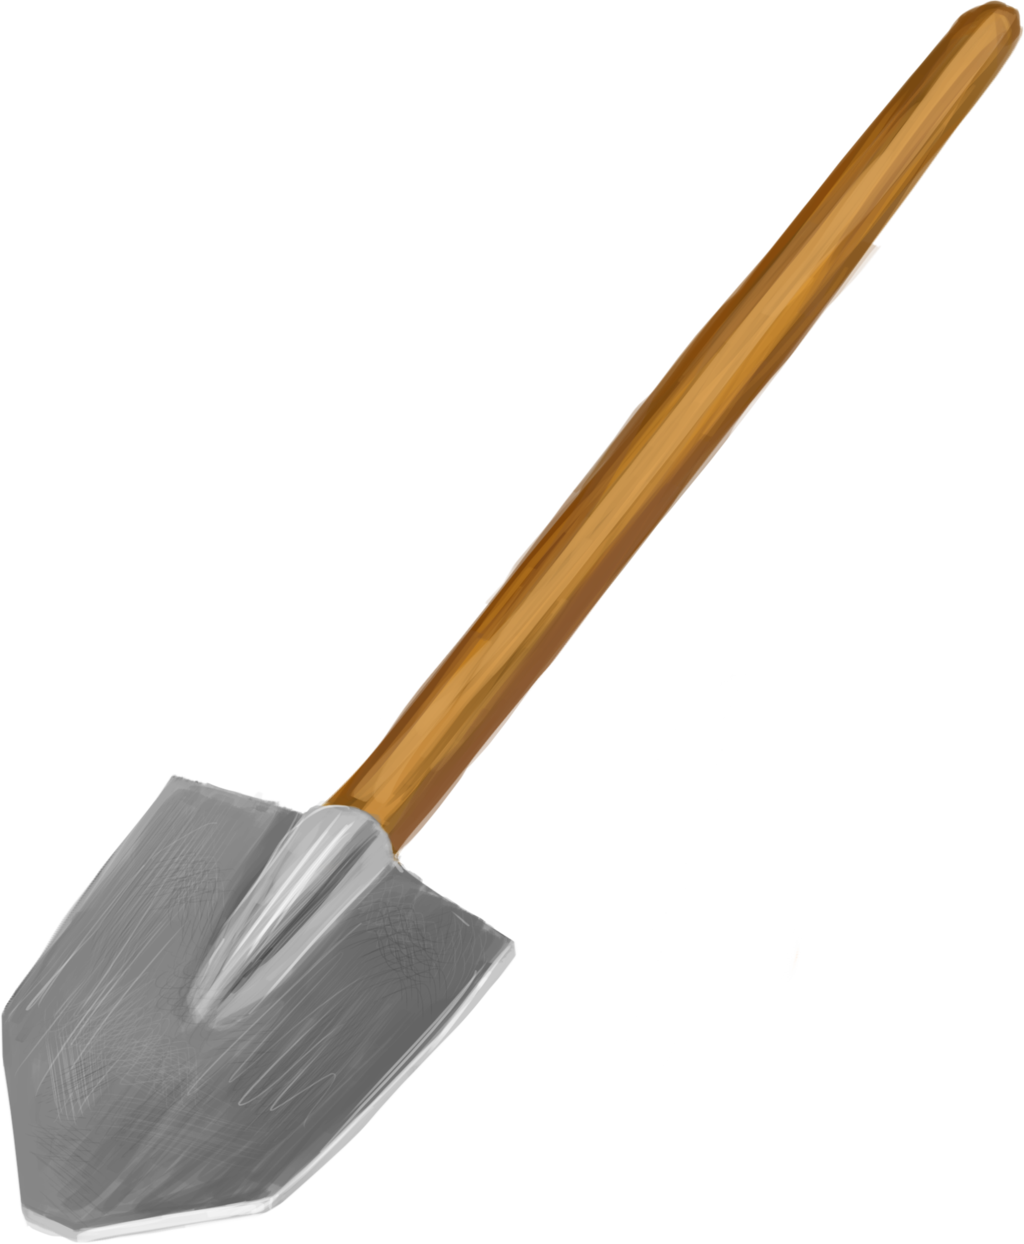 wooden spade png